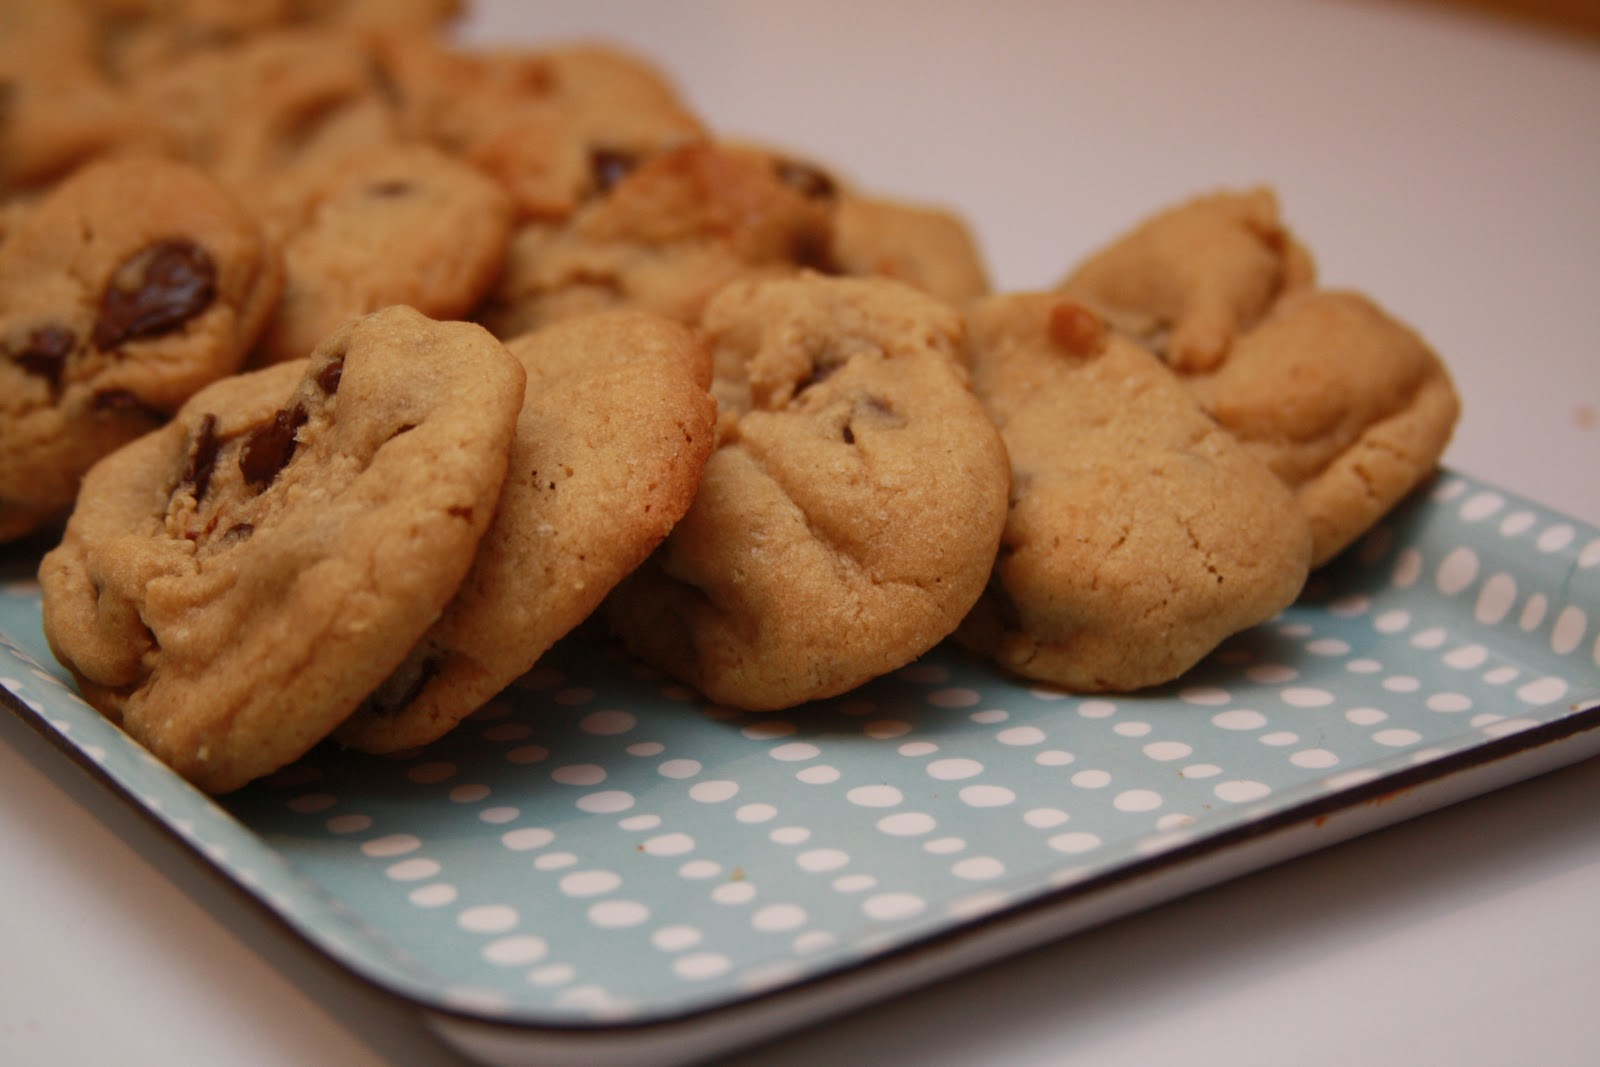 ... : The Amazing Peanut Butter-Oatmeal-Chocolate Chip Cookie Experiment